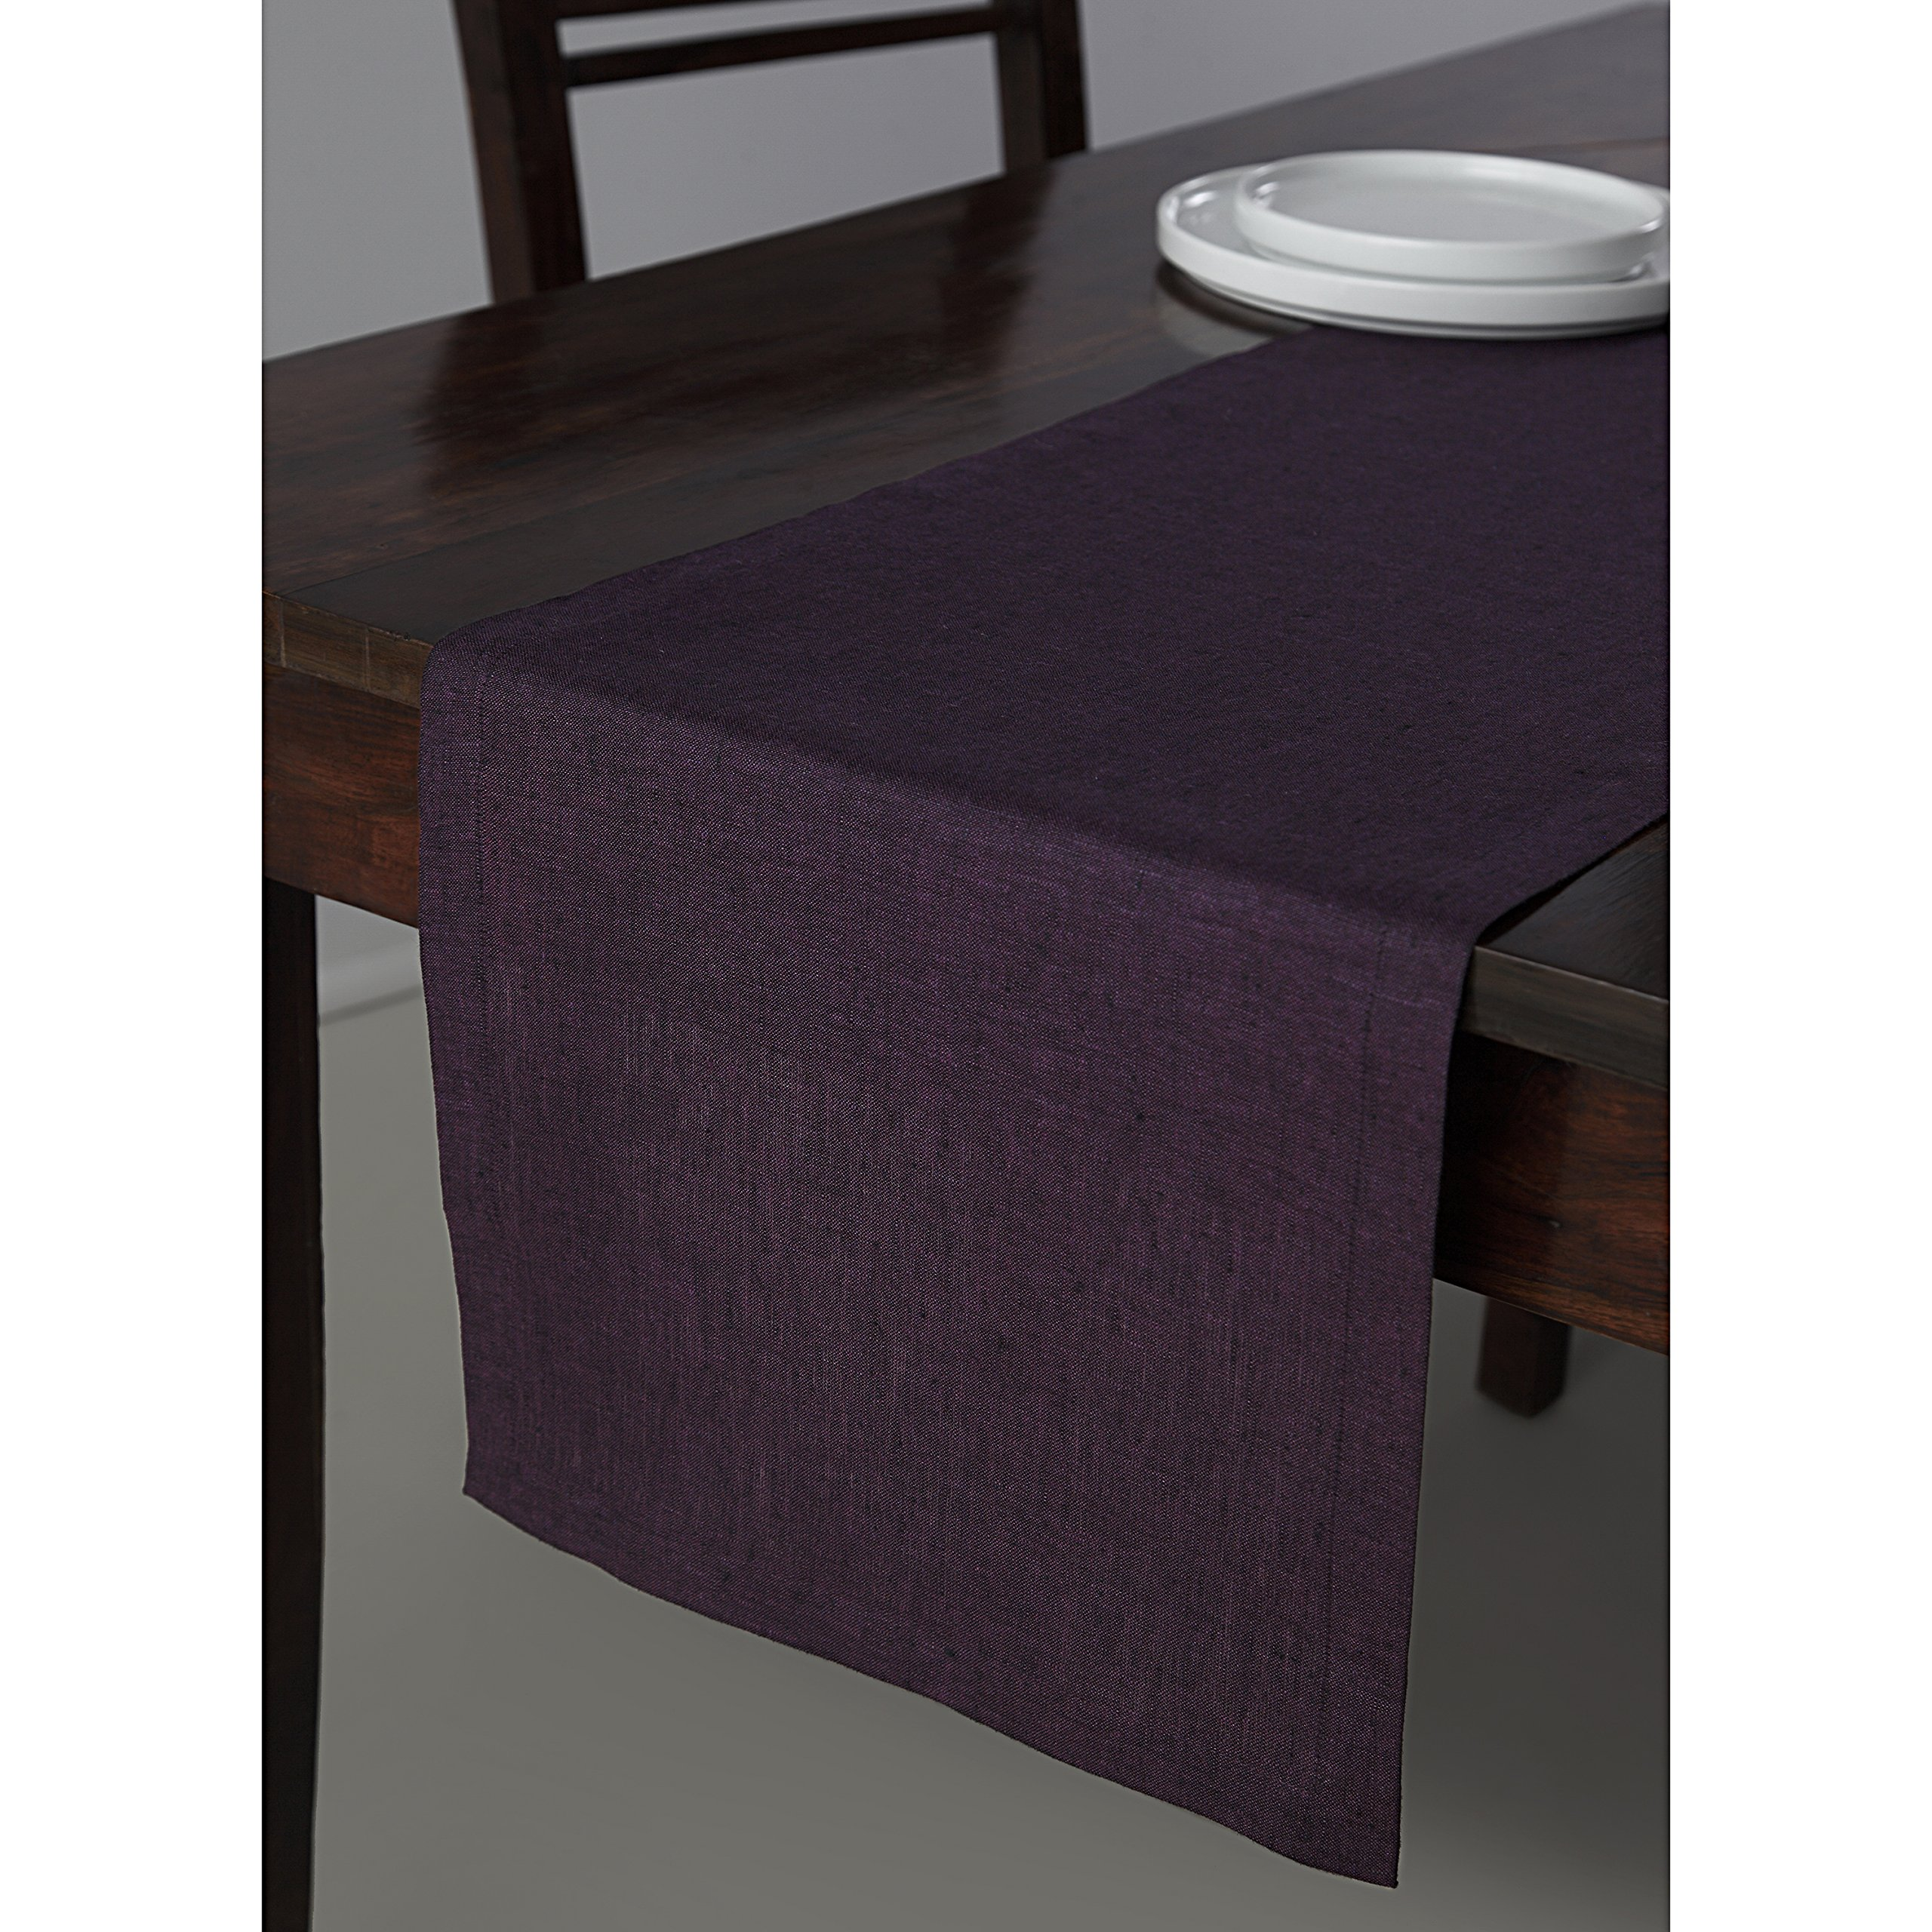 Solino Home 100% Pure Linen Table Runner Athena, Natural Fabric Handcrafted Runner, Purple 14 x 36 Inch by Solino Home (Image #1)